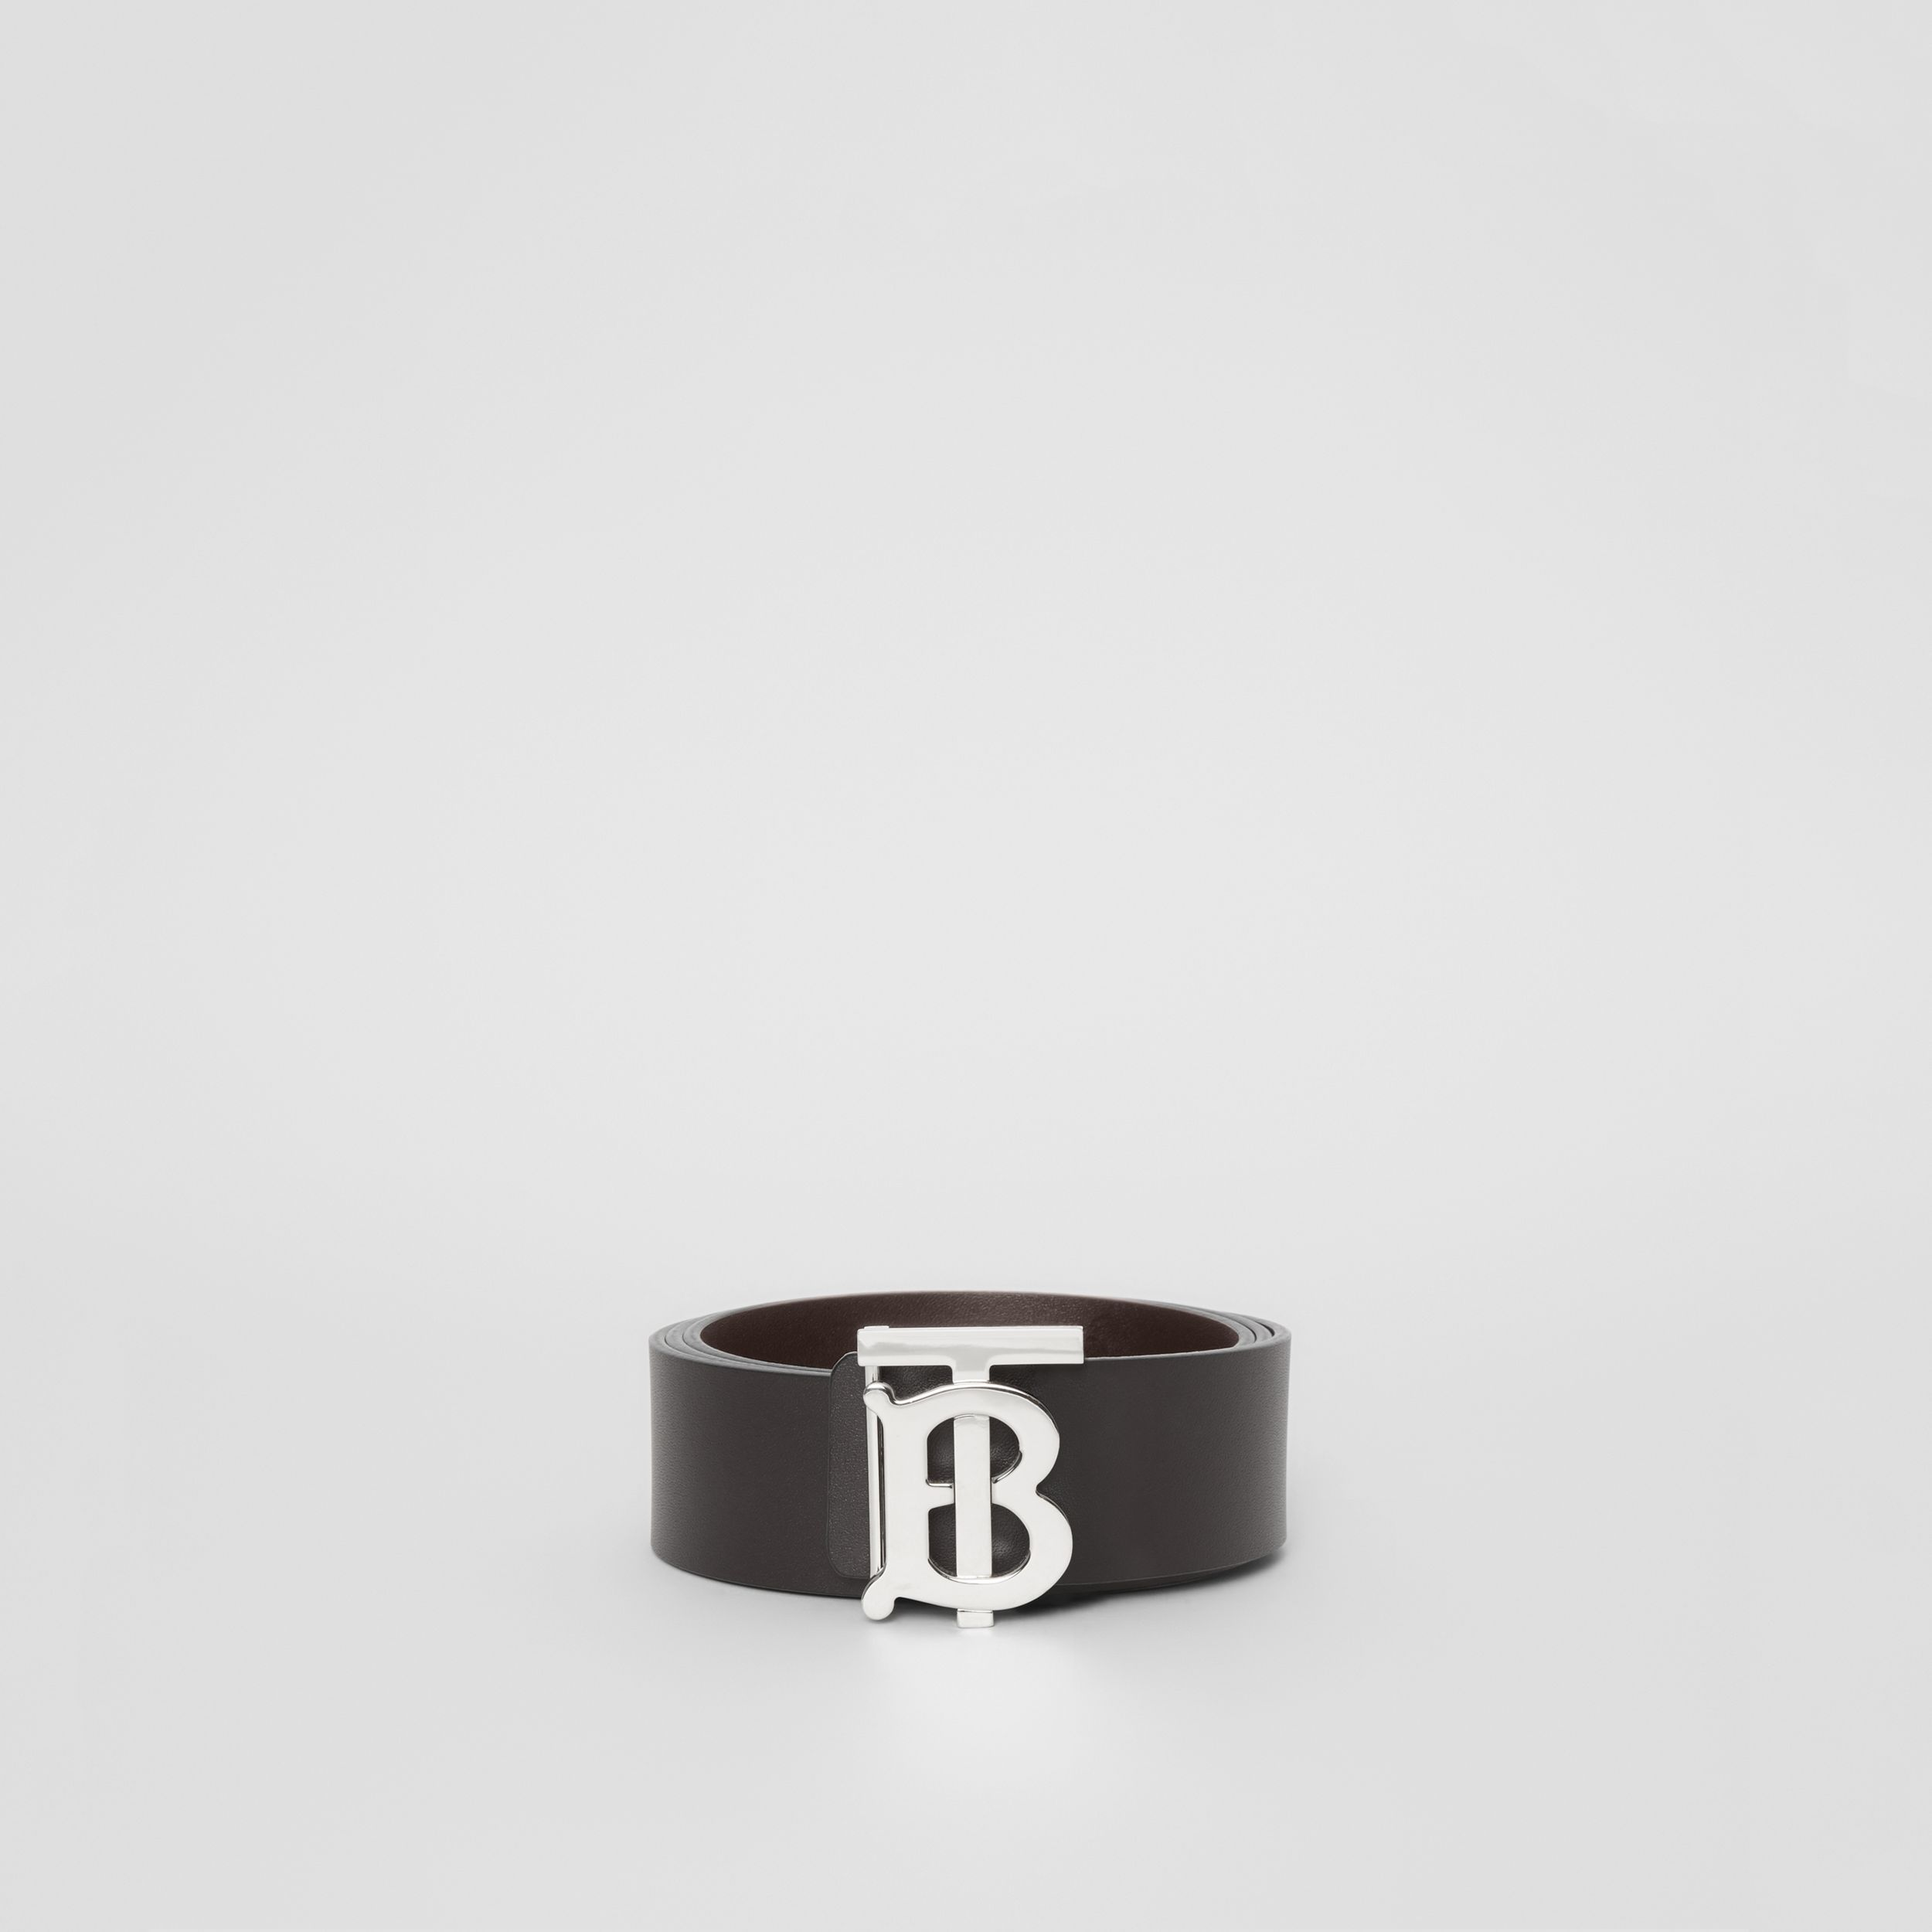 Reversible Monogram Motif Leather Belt in Black/malt Brown | Burberry Australia - 4